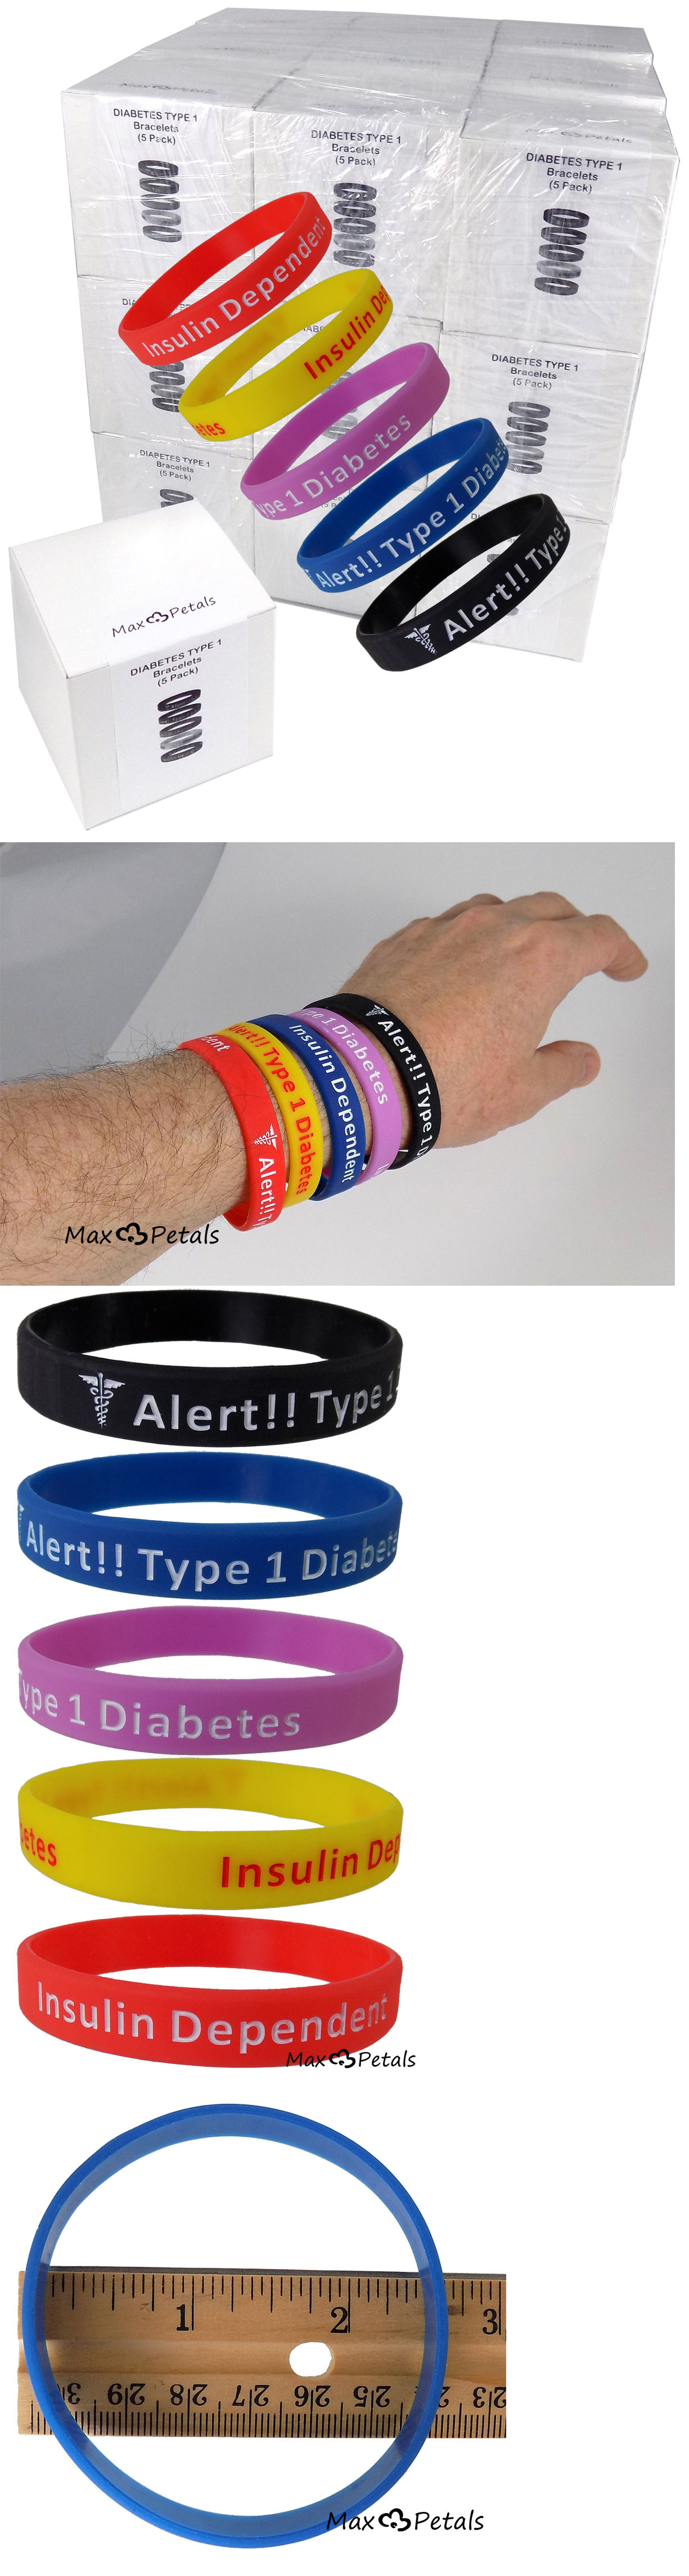 mediband silicon condition b uk diabetes by in medical stock bracelets traditional alert gb type id bracelet